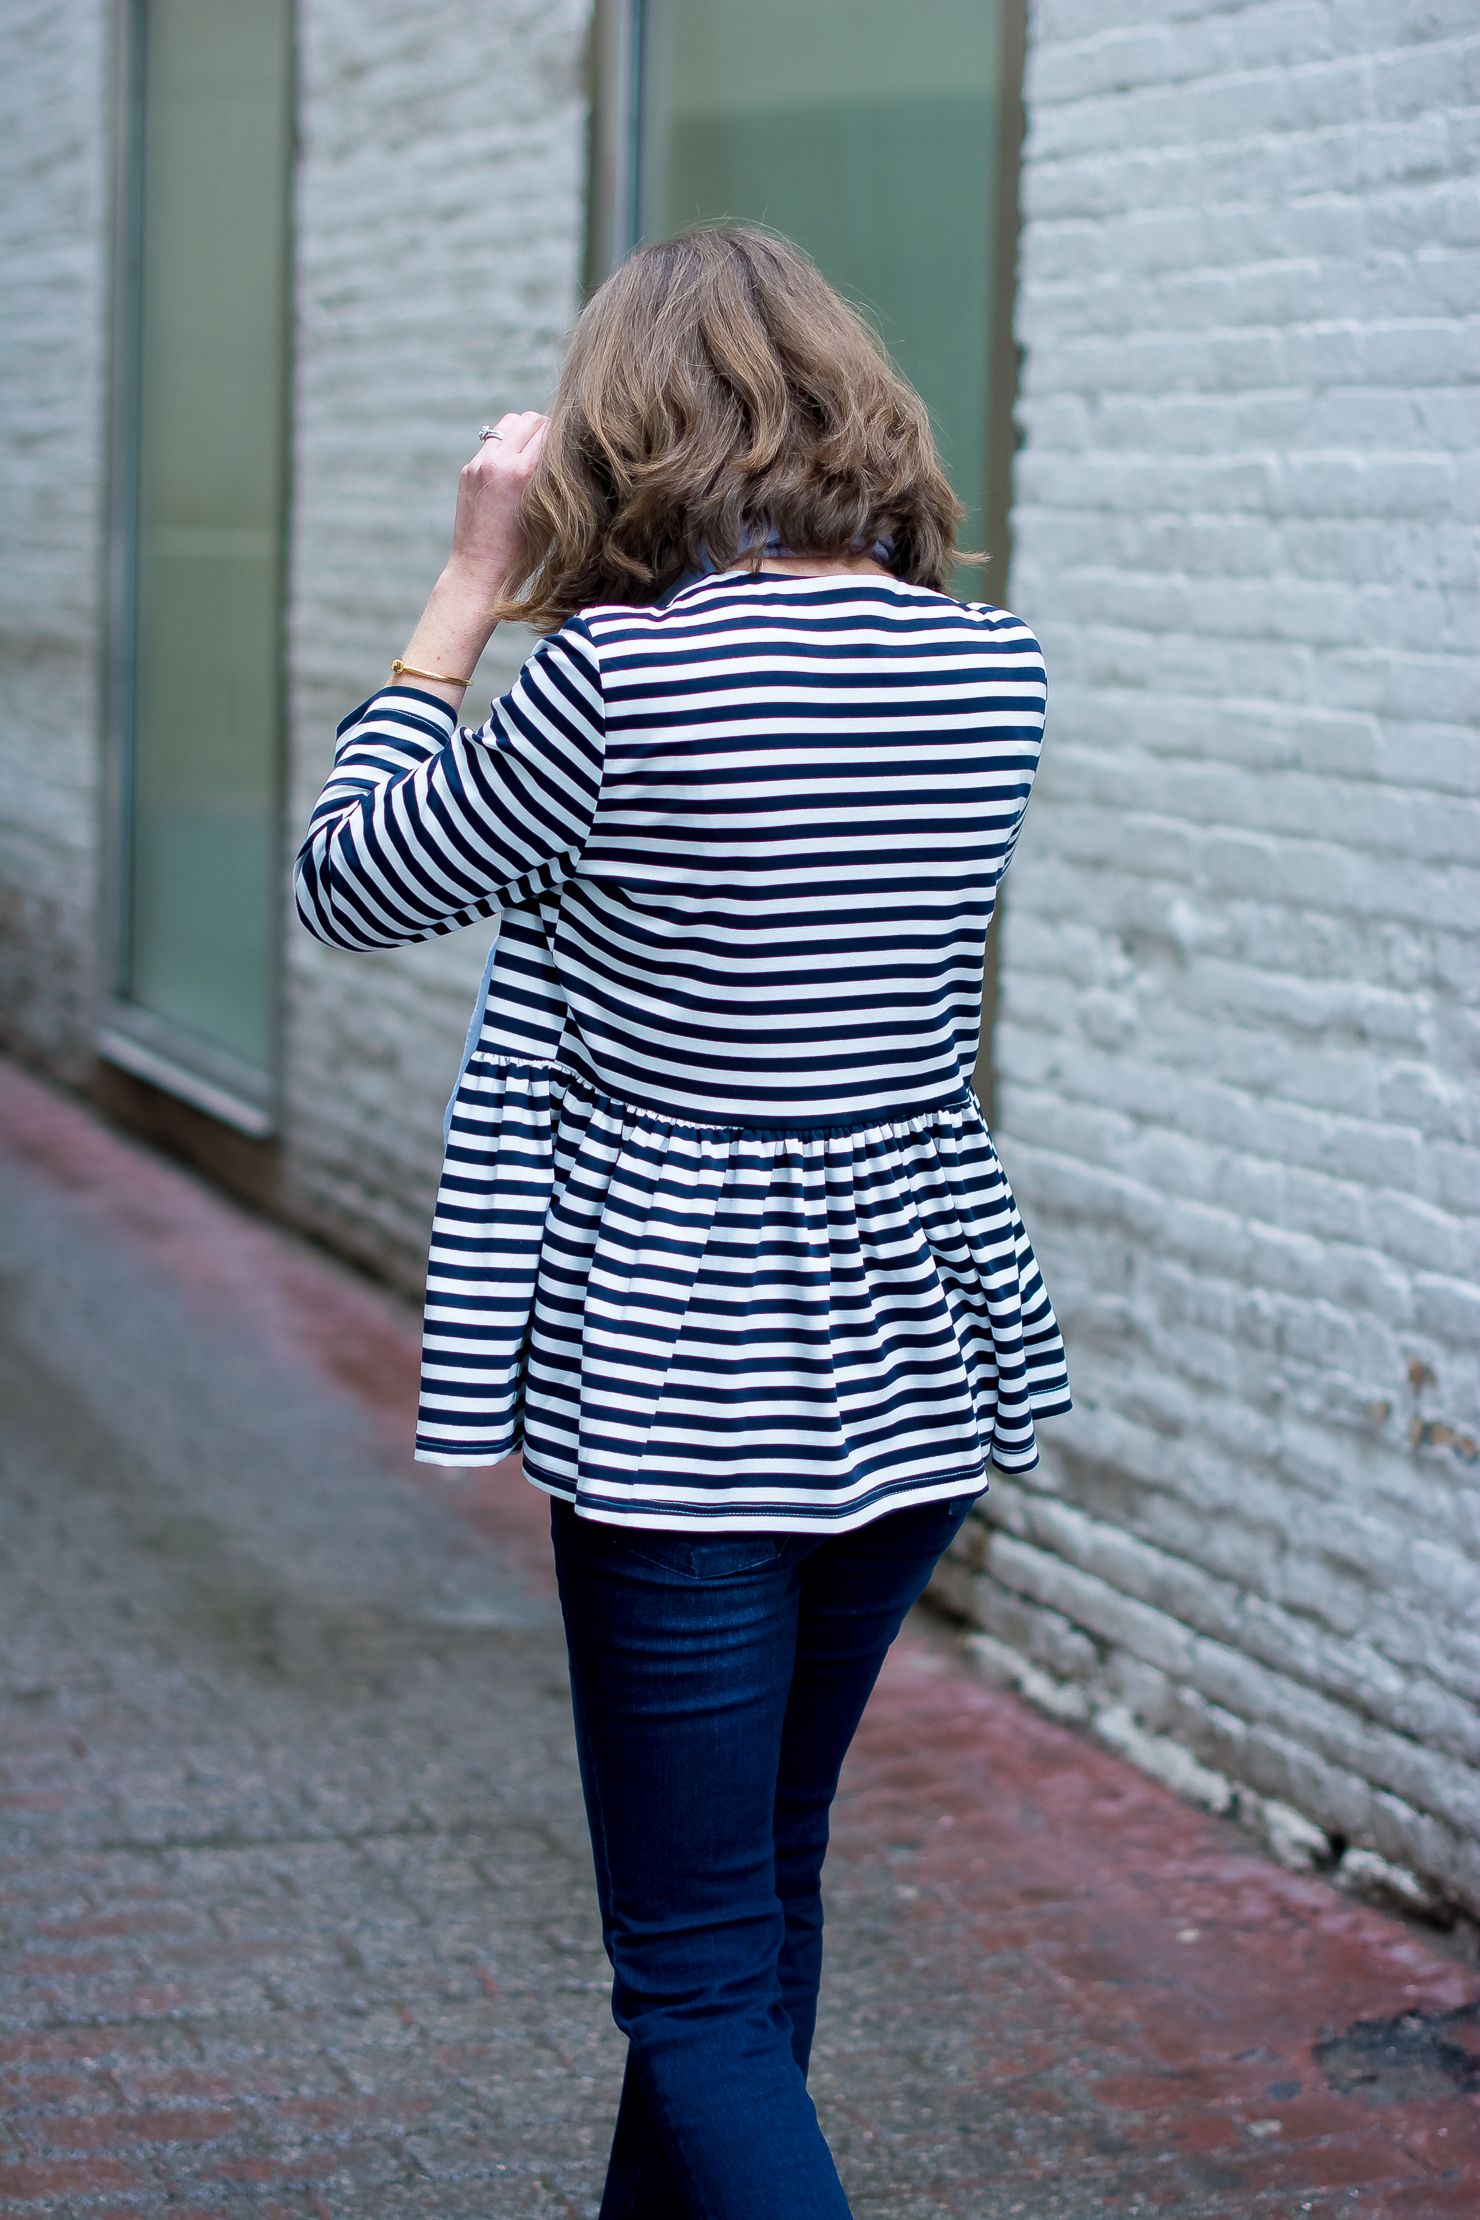 shein-blue-and-white-striped-peplum-jacket-high-rise-dark-wash-flares-white-pumps-rainy-day-spring-outfit